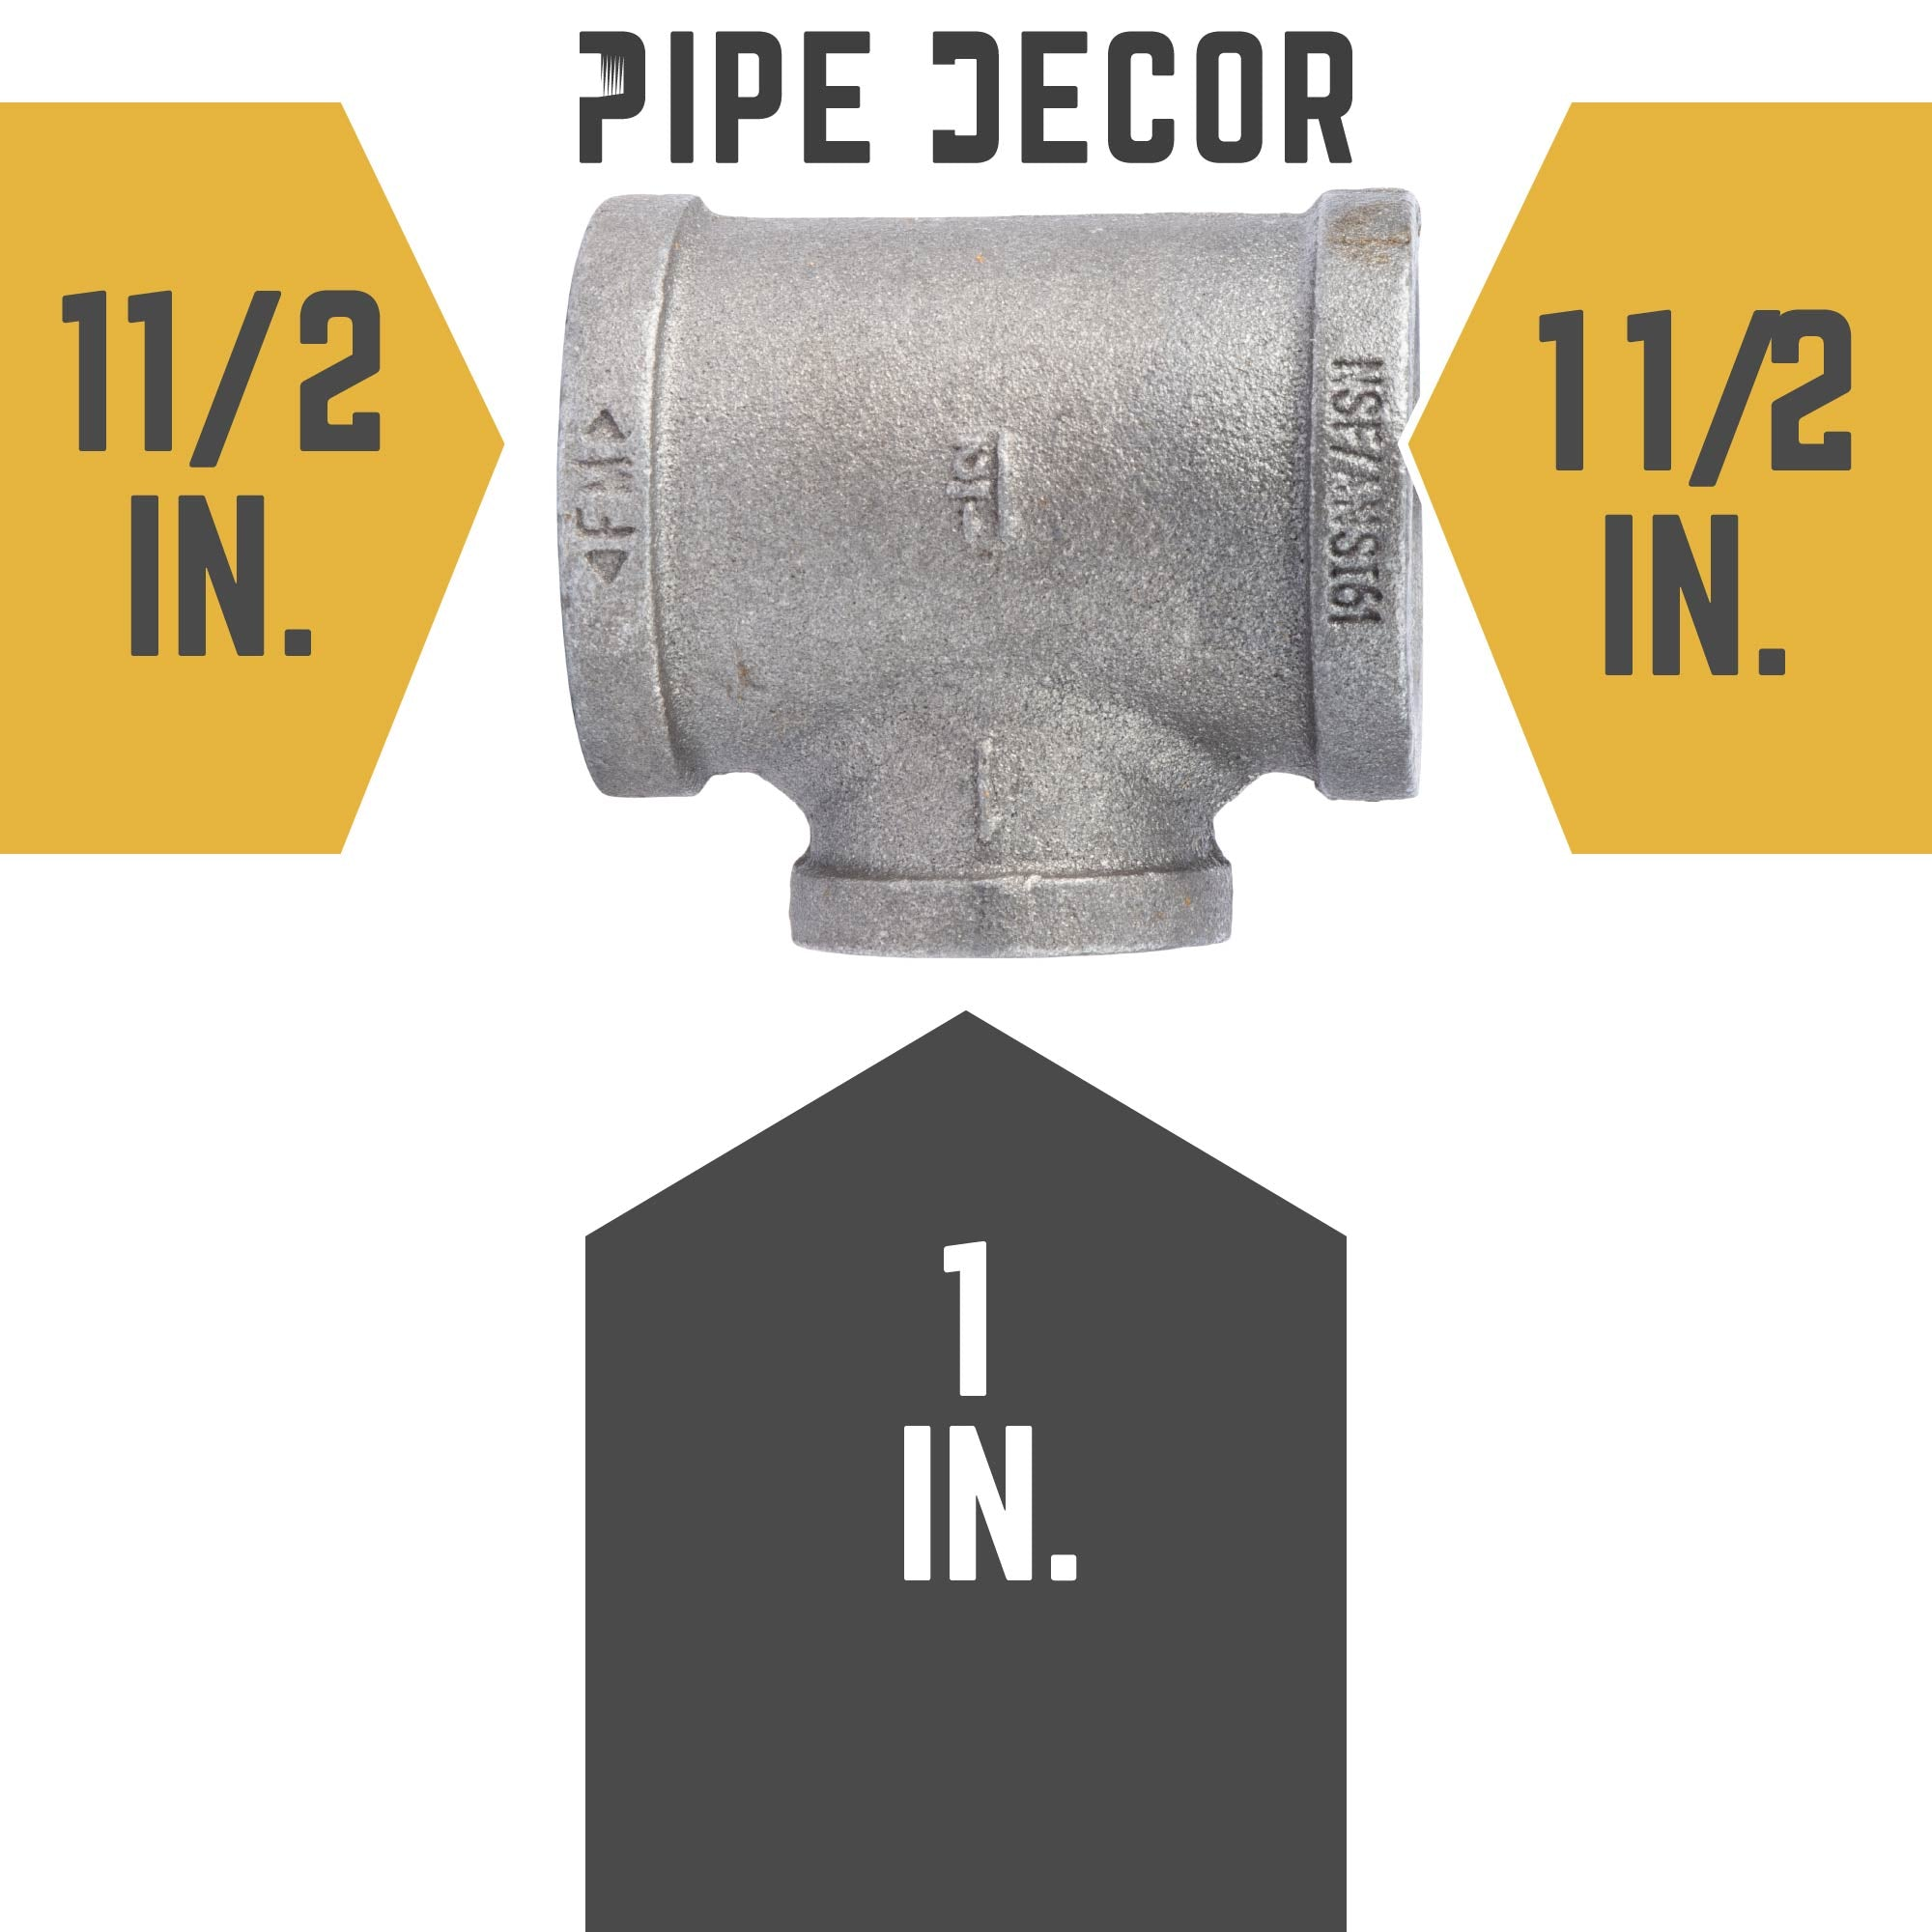 1 1/2 in. X 1 1/2 in.  X 1 in. Black Tee - Pipe Decor